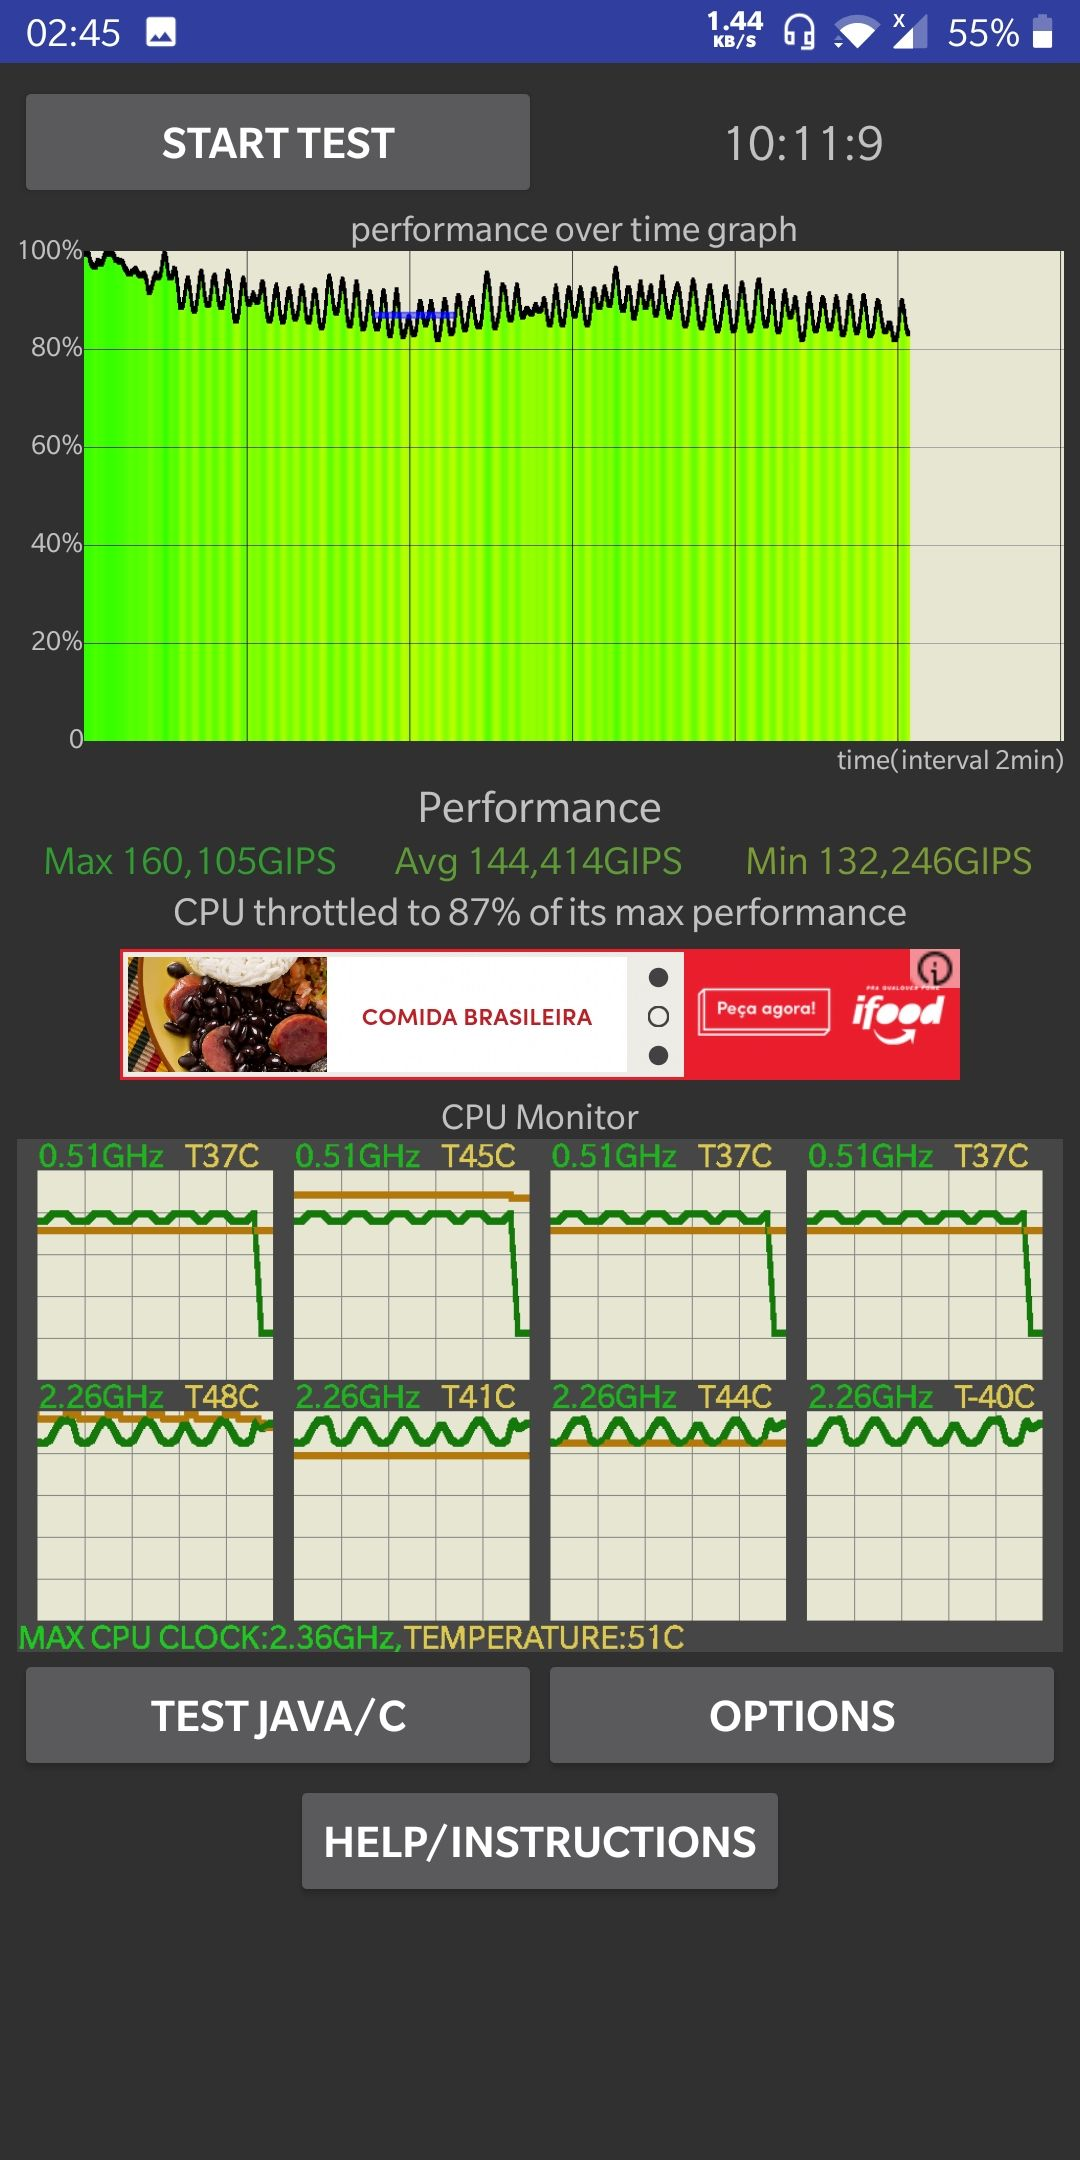 POST your Cpu throttle results - OnePlus Community